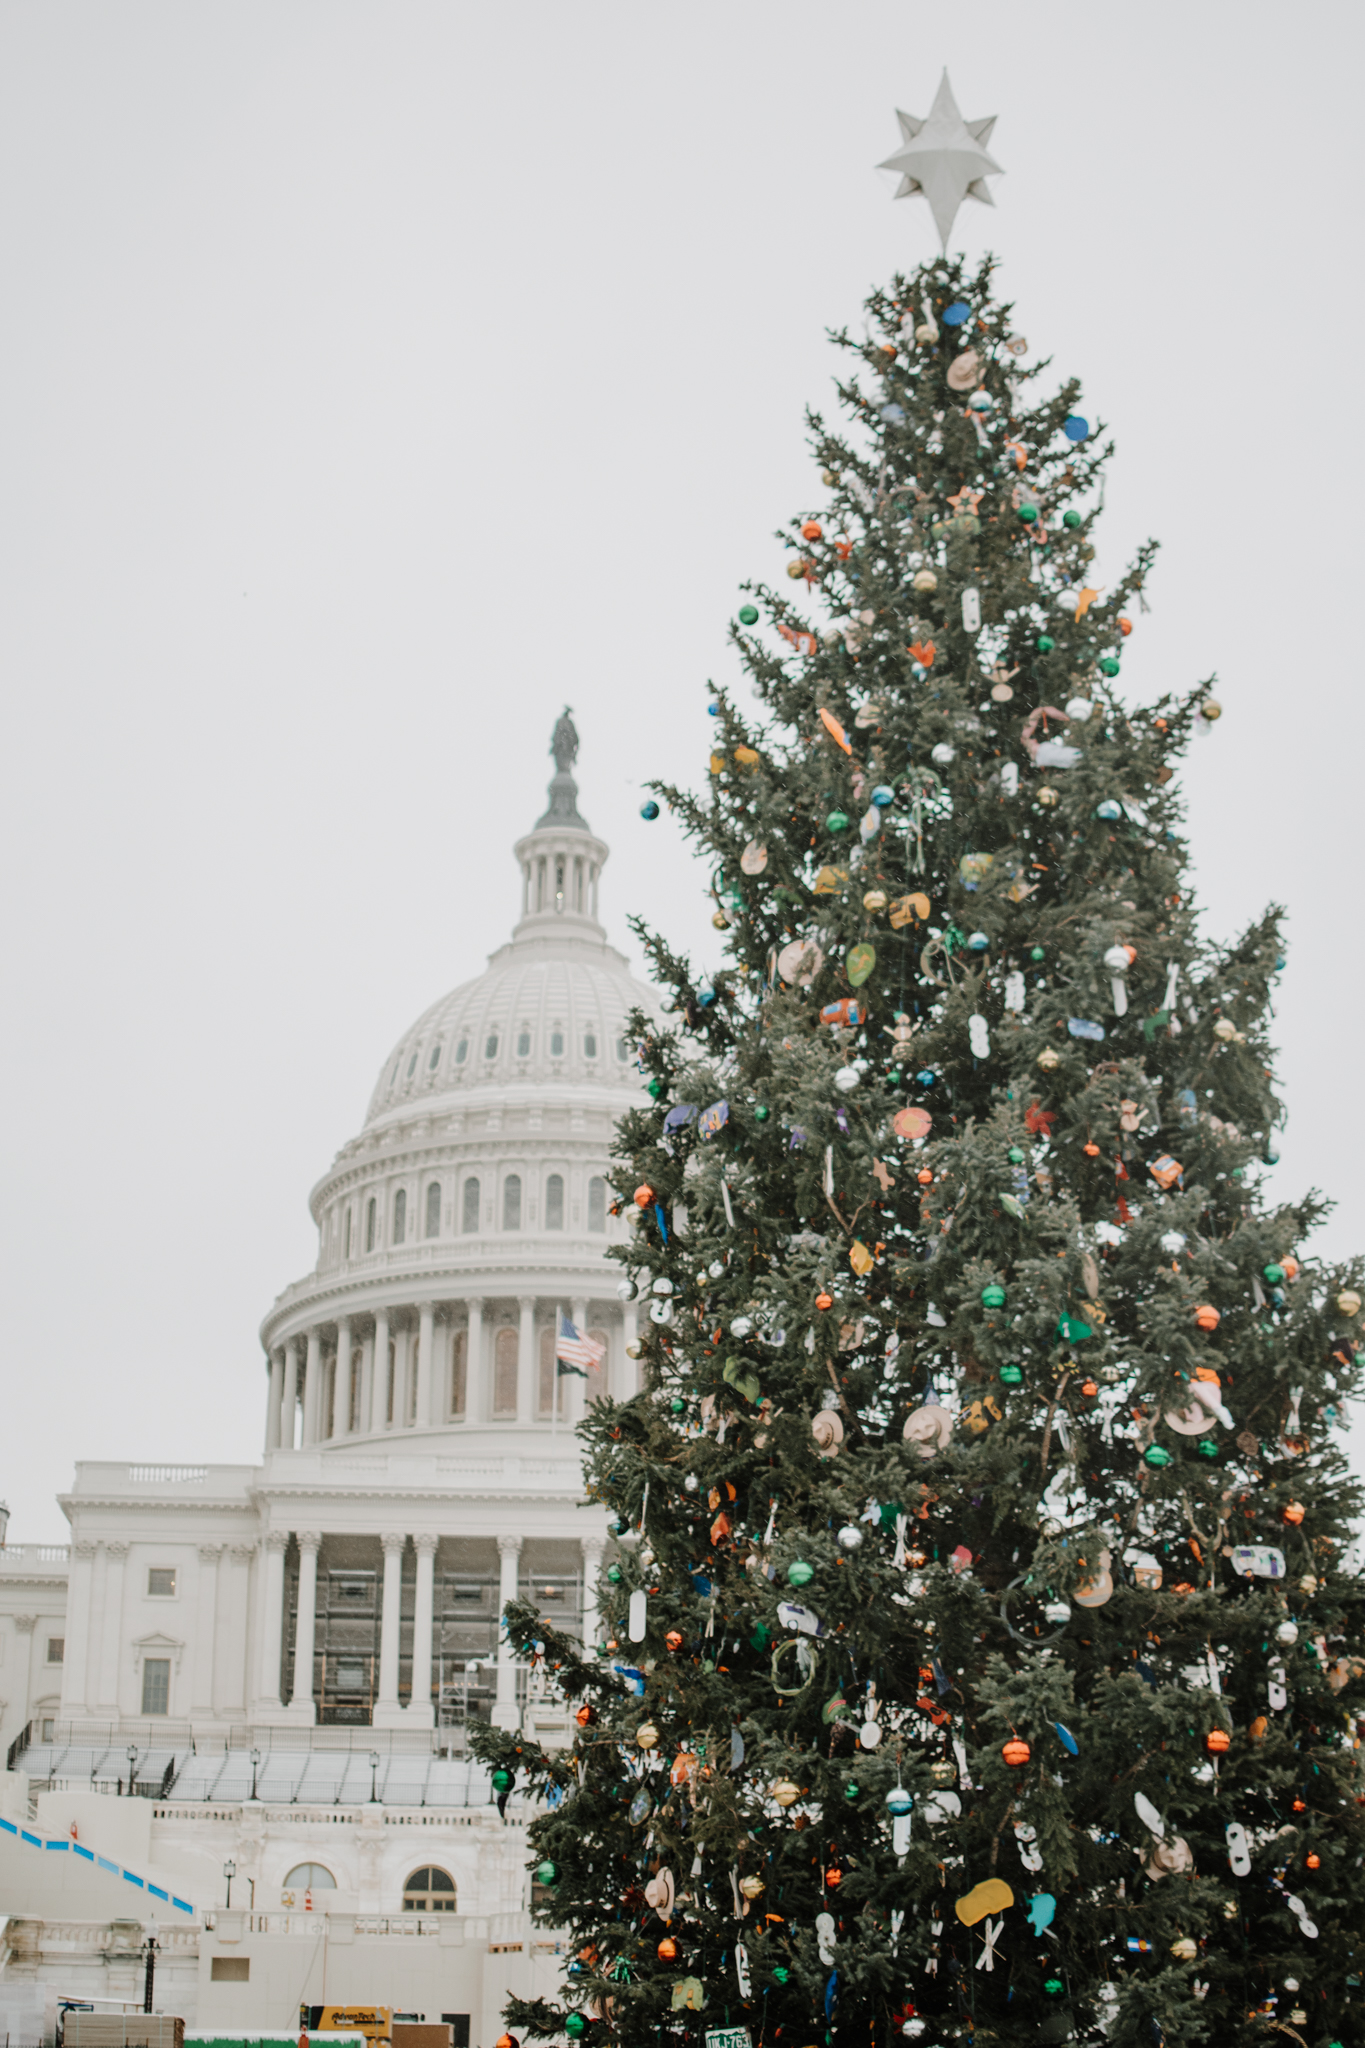 snow day in washington dc - us capitol christmas tree - us capitol in the snow